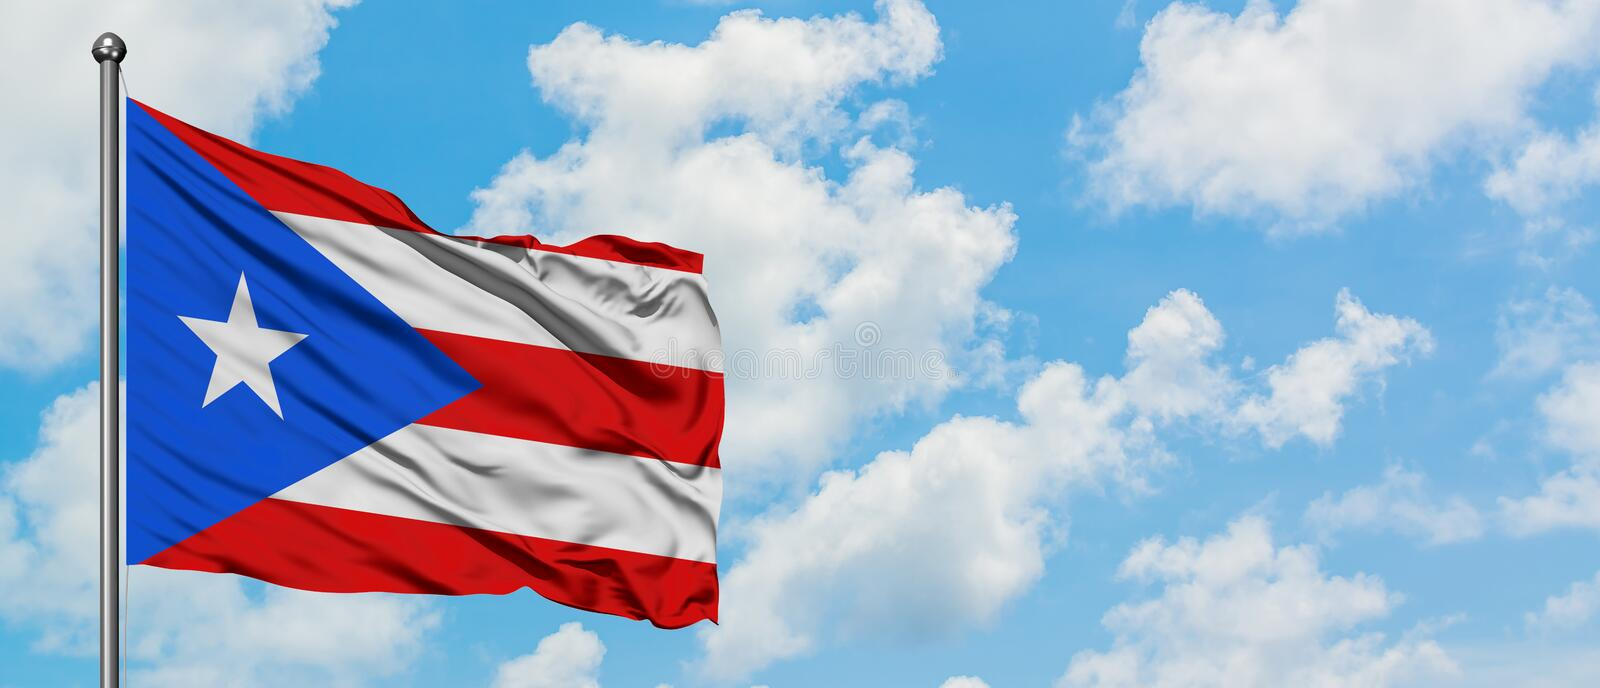 Puerto Rico flag waving in the wind against white cloudy blue sky. Diplomacy concept, international relations.  royalty free stock photo